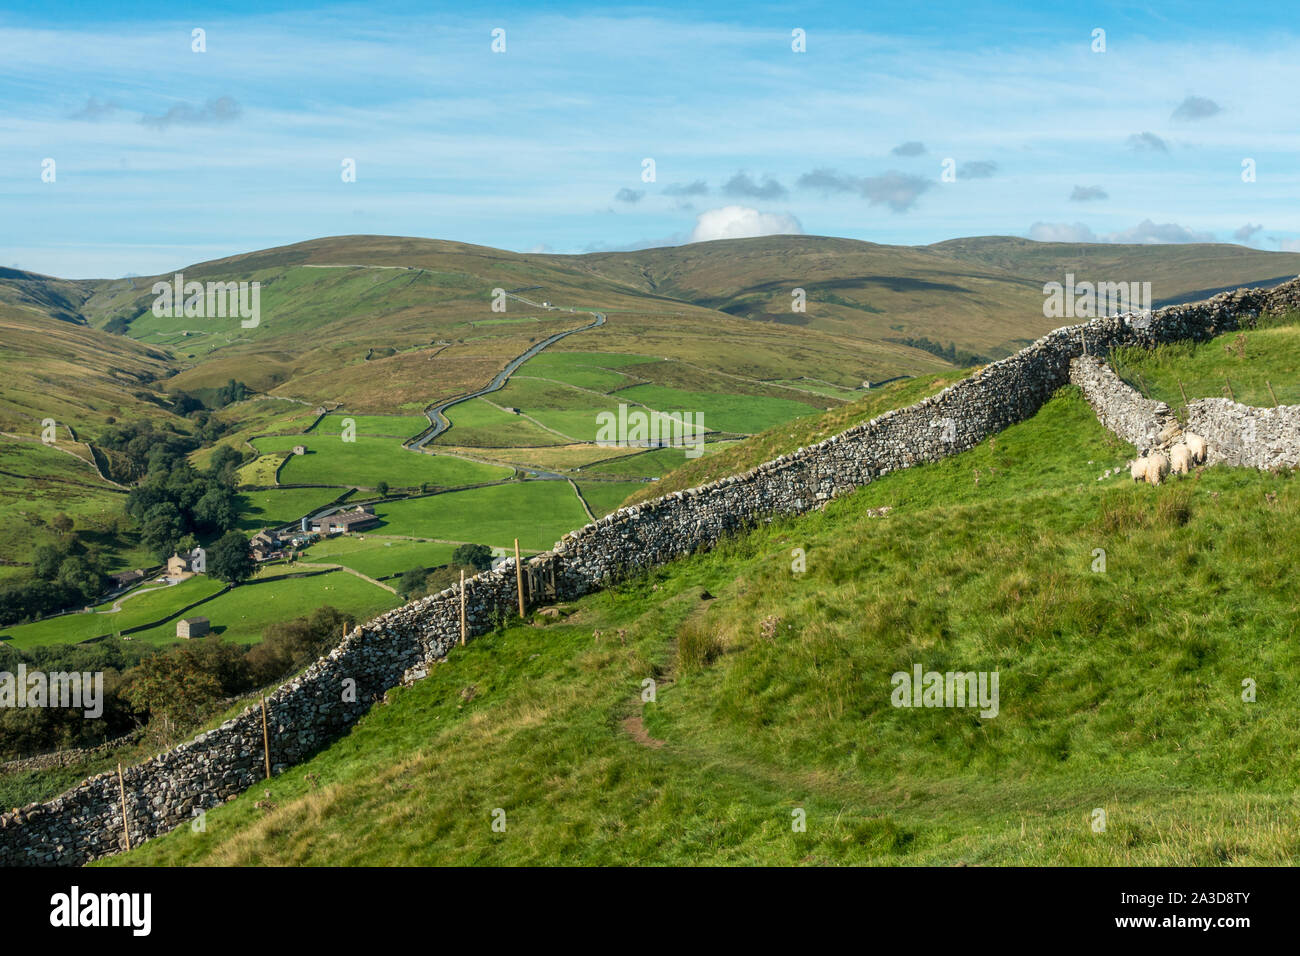 Looking at Buttertubs pass (famous road biking hill climb) in Swaledale from a distance & lots of old stone barns, Yorkshire Dales National Park Stock Photo